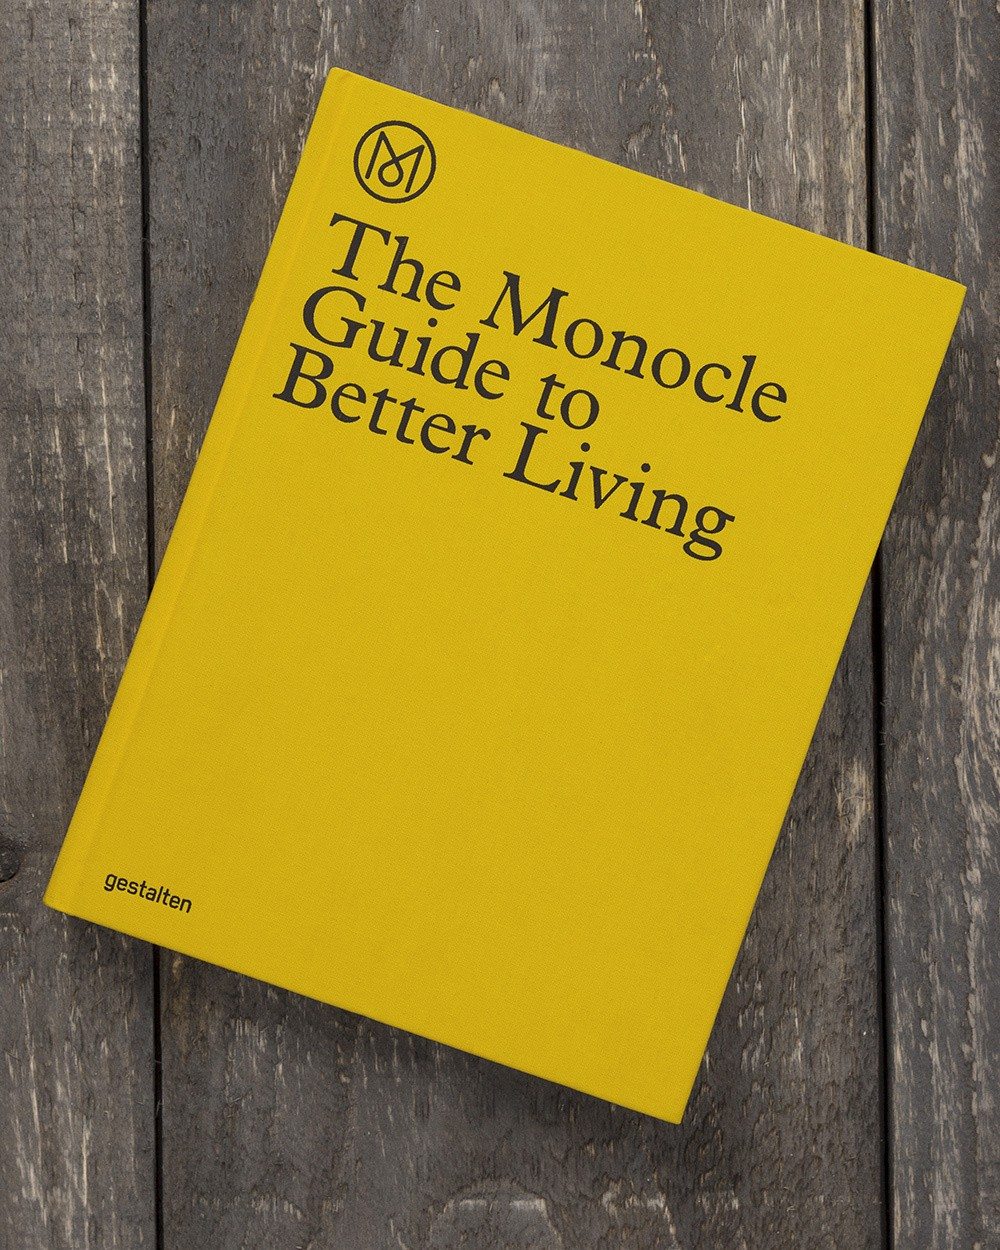 The Monocle Guide to Better Living by Andrew Tuck